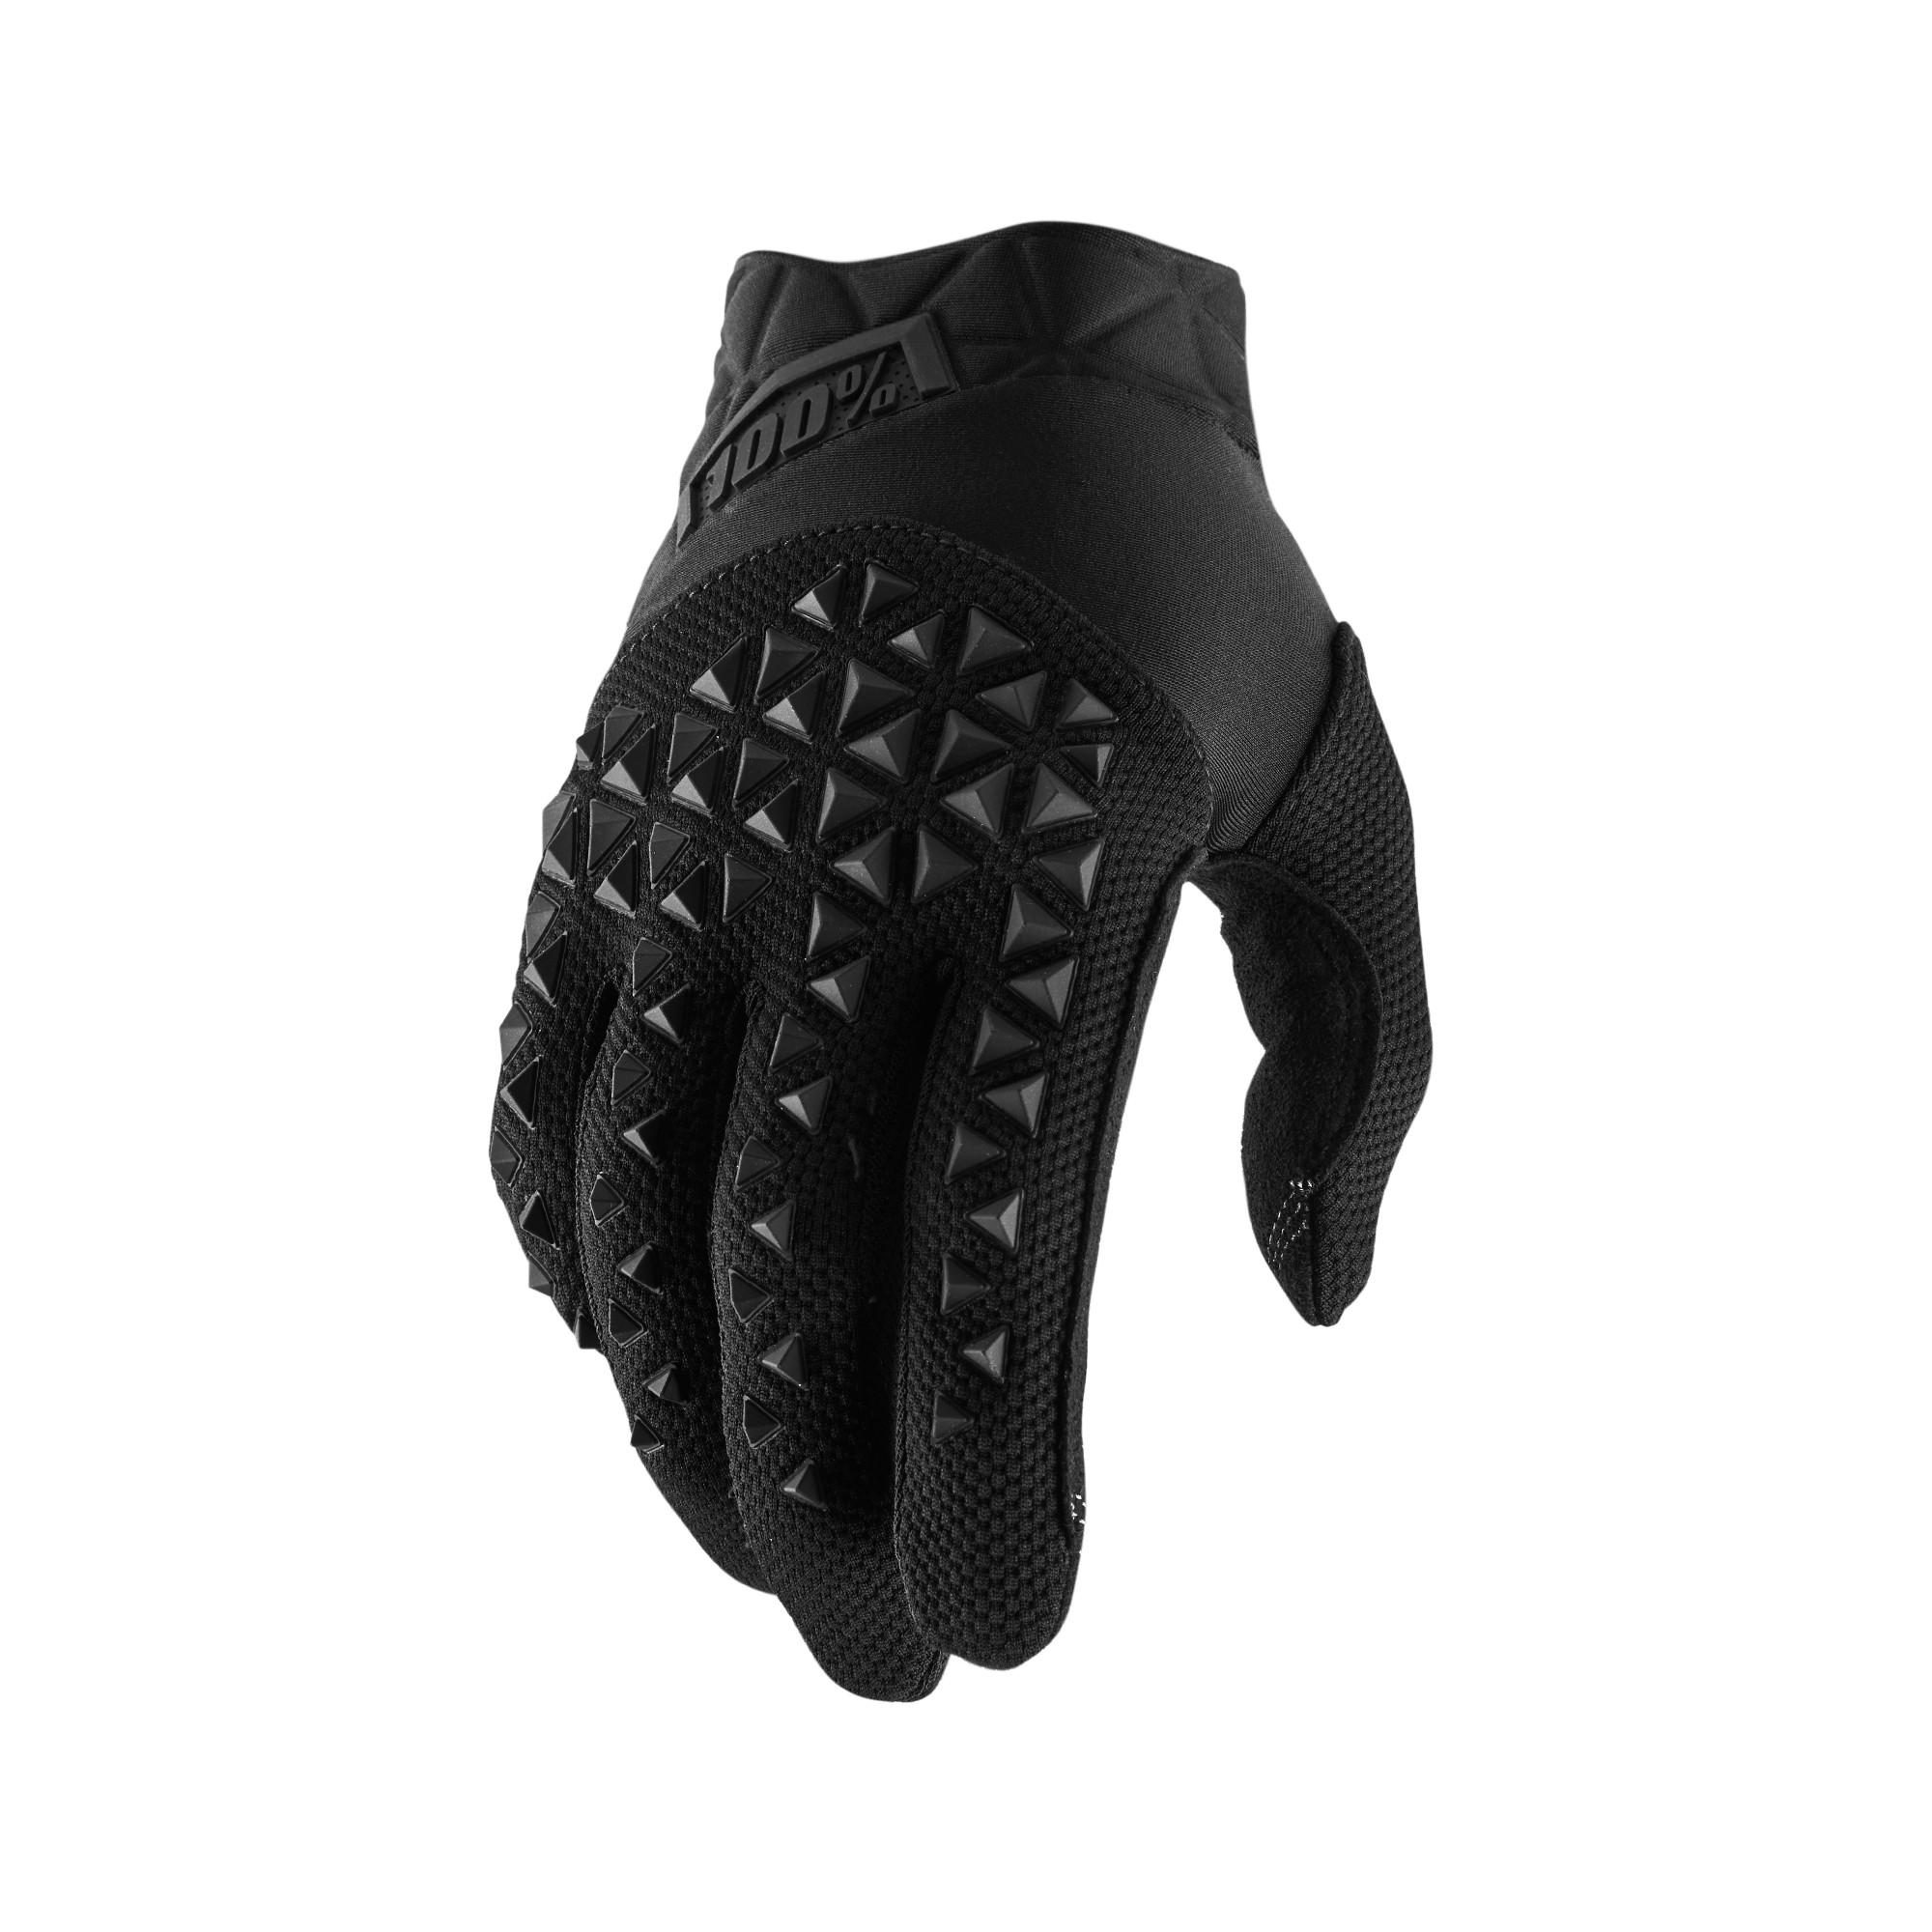 AIRMATIC 100% Glove Black/Charcoal